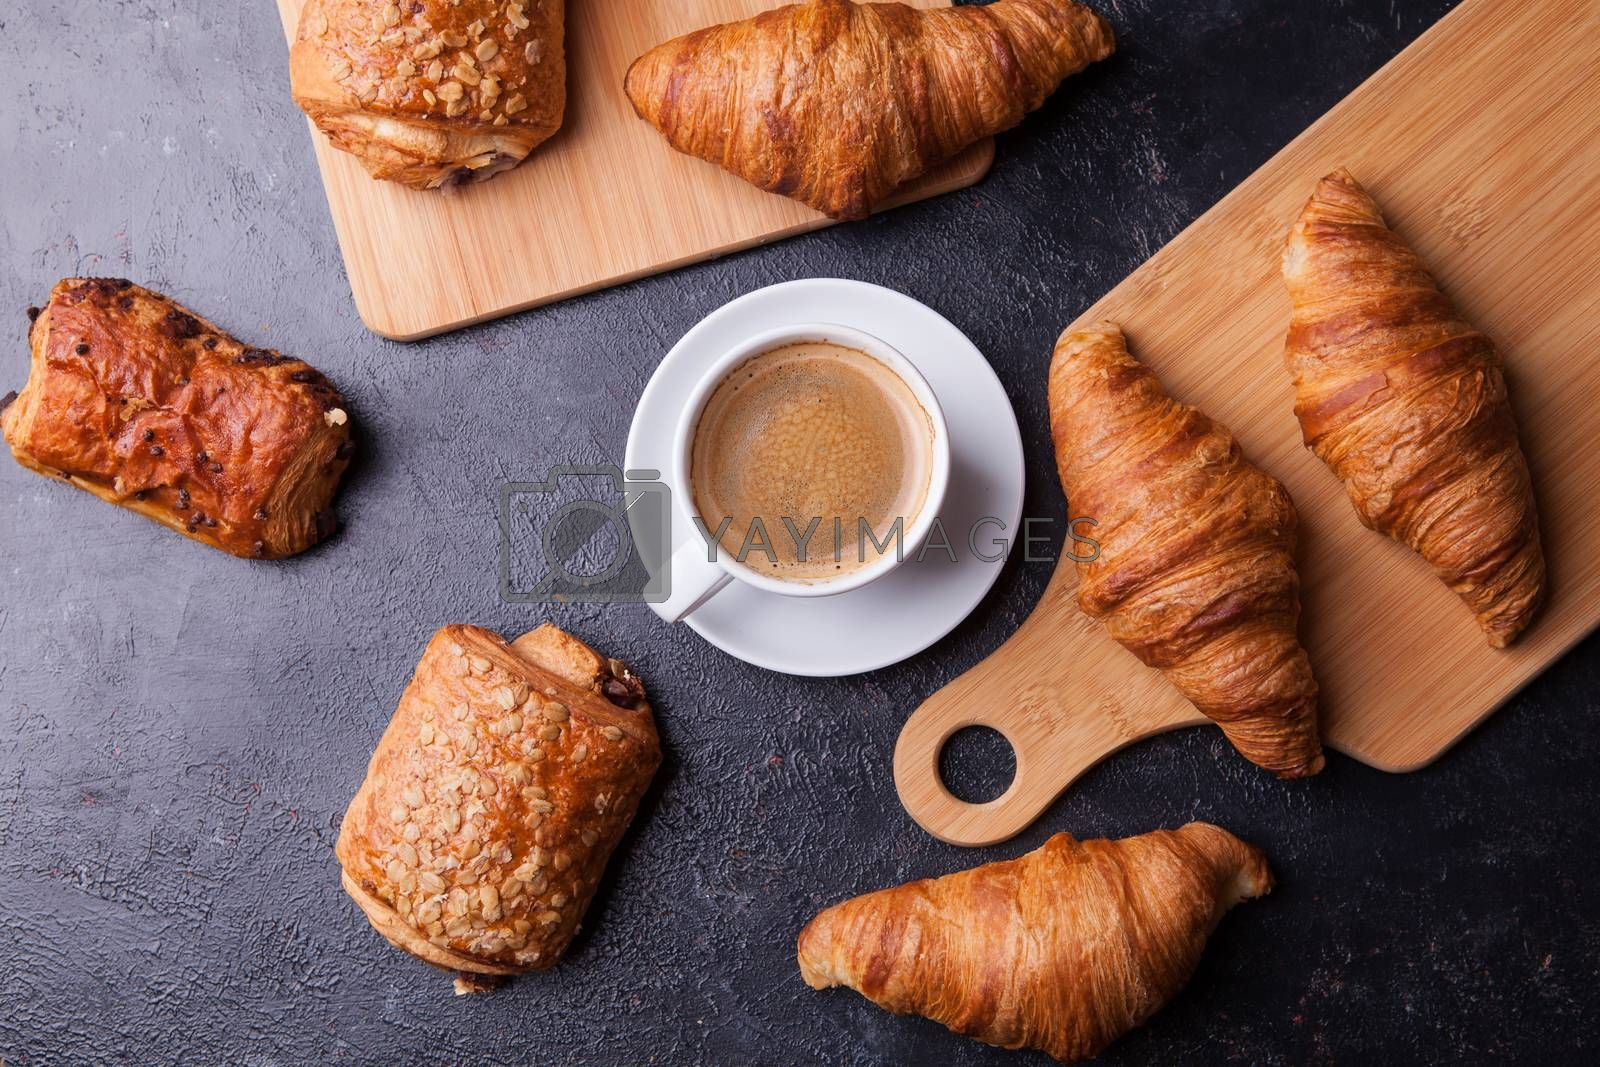 Assortment of pastries with coffee cup on wooden table background by DCStudio